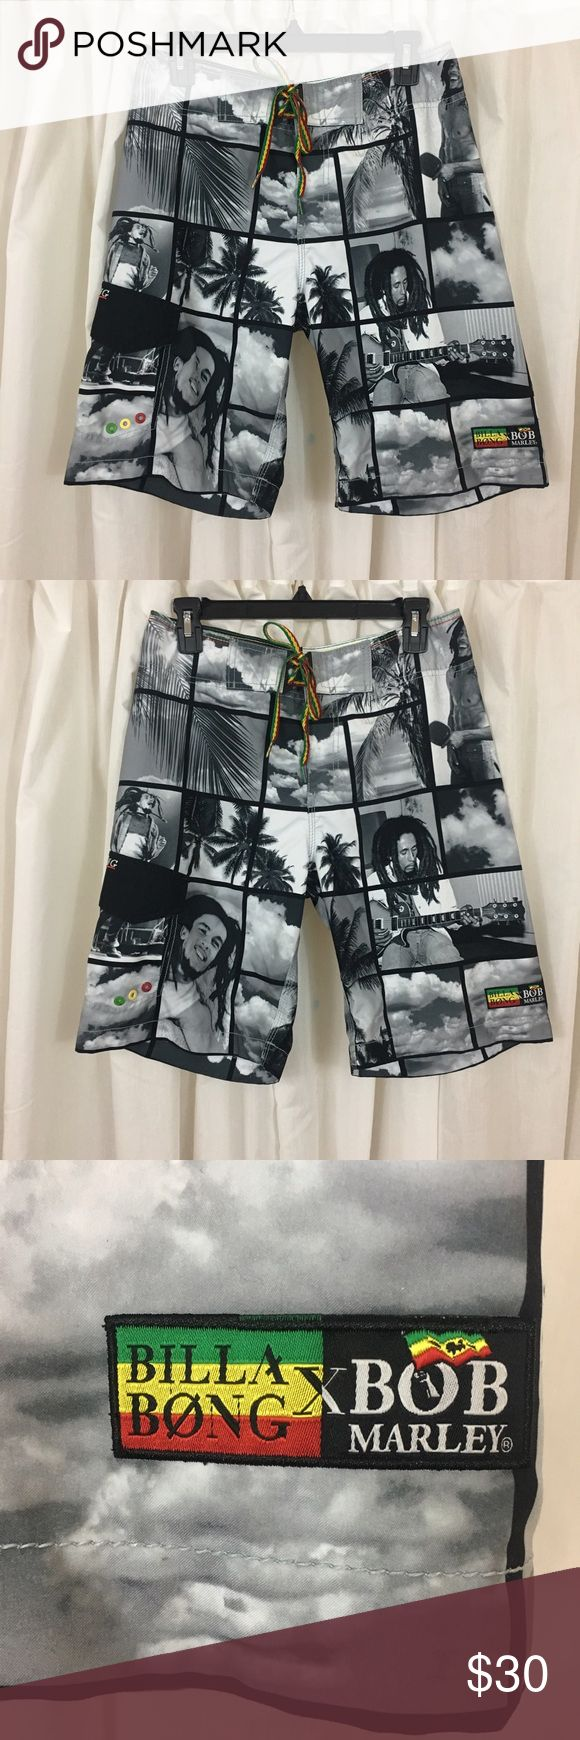 Billabong Bob Marley Board Shorts Beautiful detailed pictures of Bob Marley, Rasta colored stitching detail on waist, Velcro Closure on cargo pocket and fly, like new condition no sign of wear Billabong Swim Board Shorts